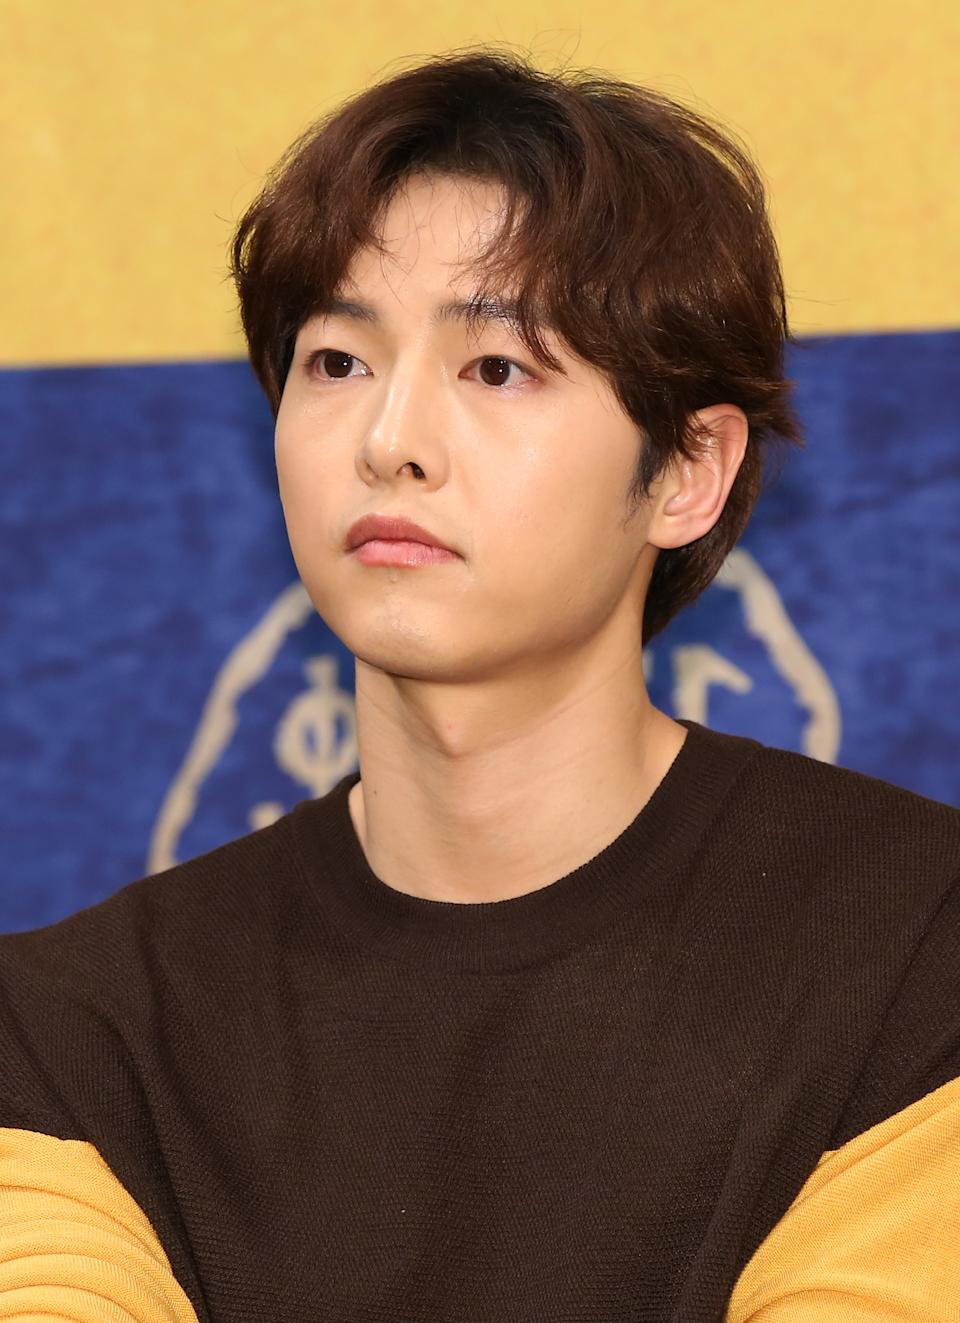 SEOUL, SOUTH KOREA - MAY 28 : Song Joong-Ki attends tvN drama